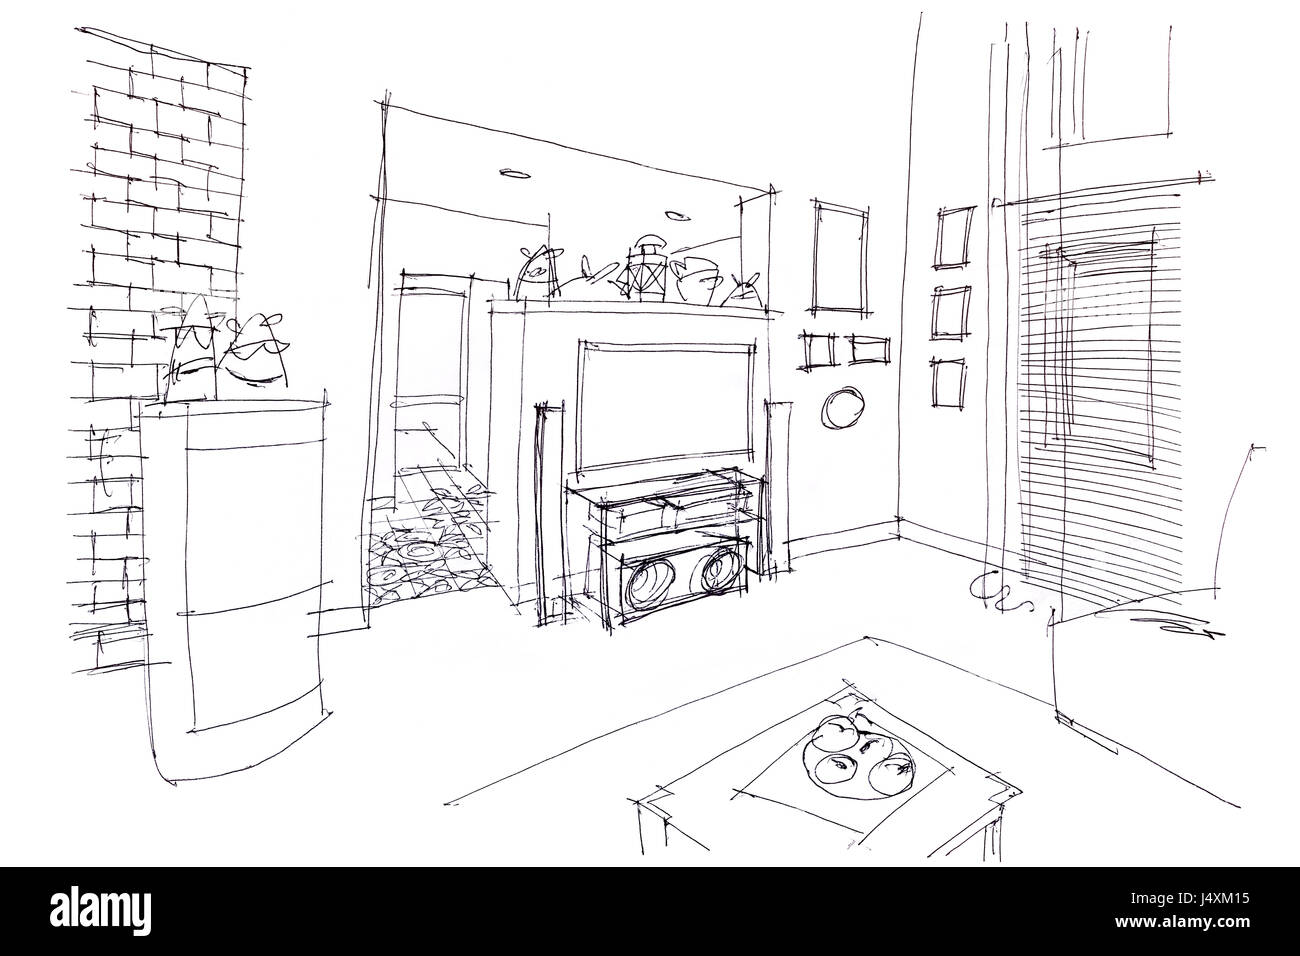 Hand drawn architectural perspective apartment stockfotos for Raumgestaltung prasentation